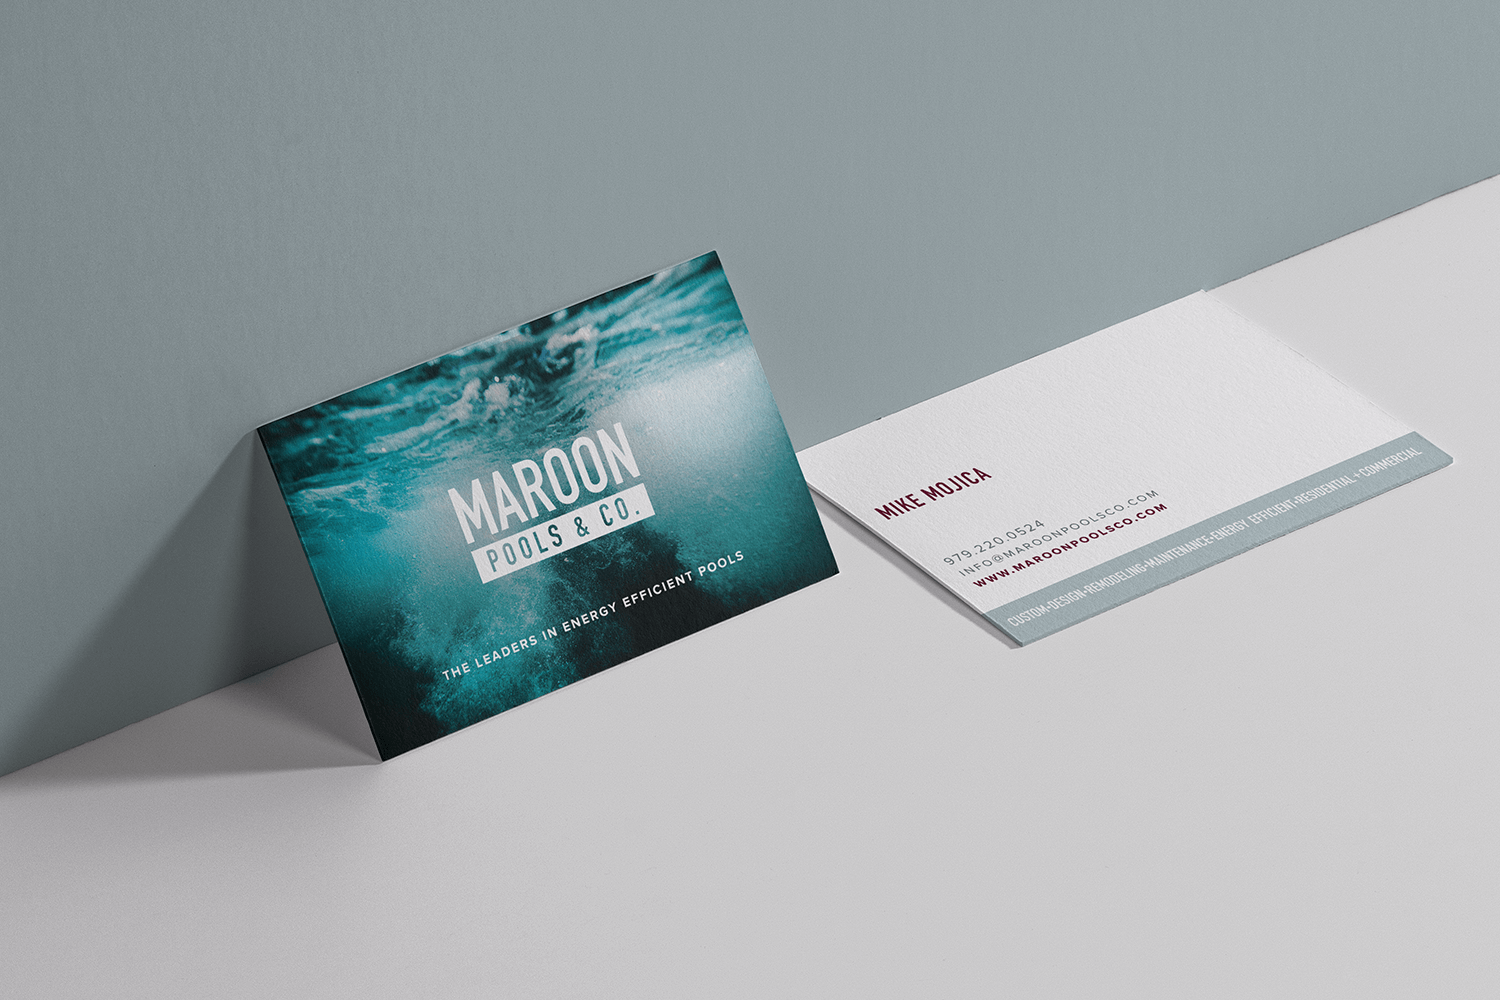 Hello-Deer-Design-Co-Maroon-Pools-cards.png